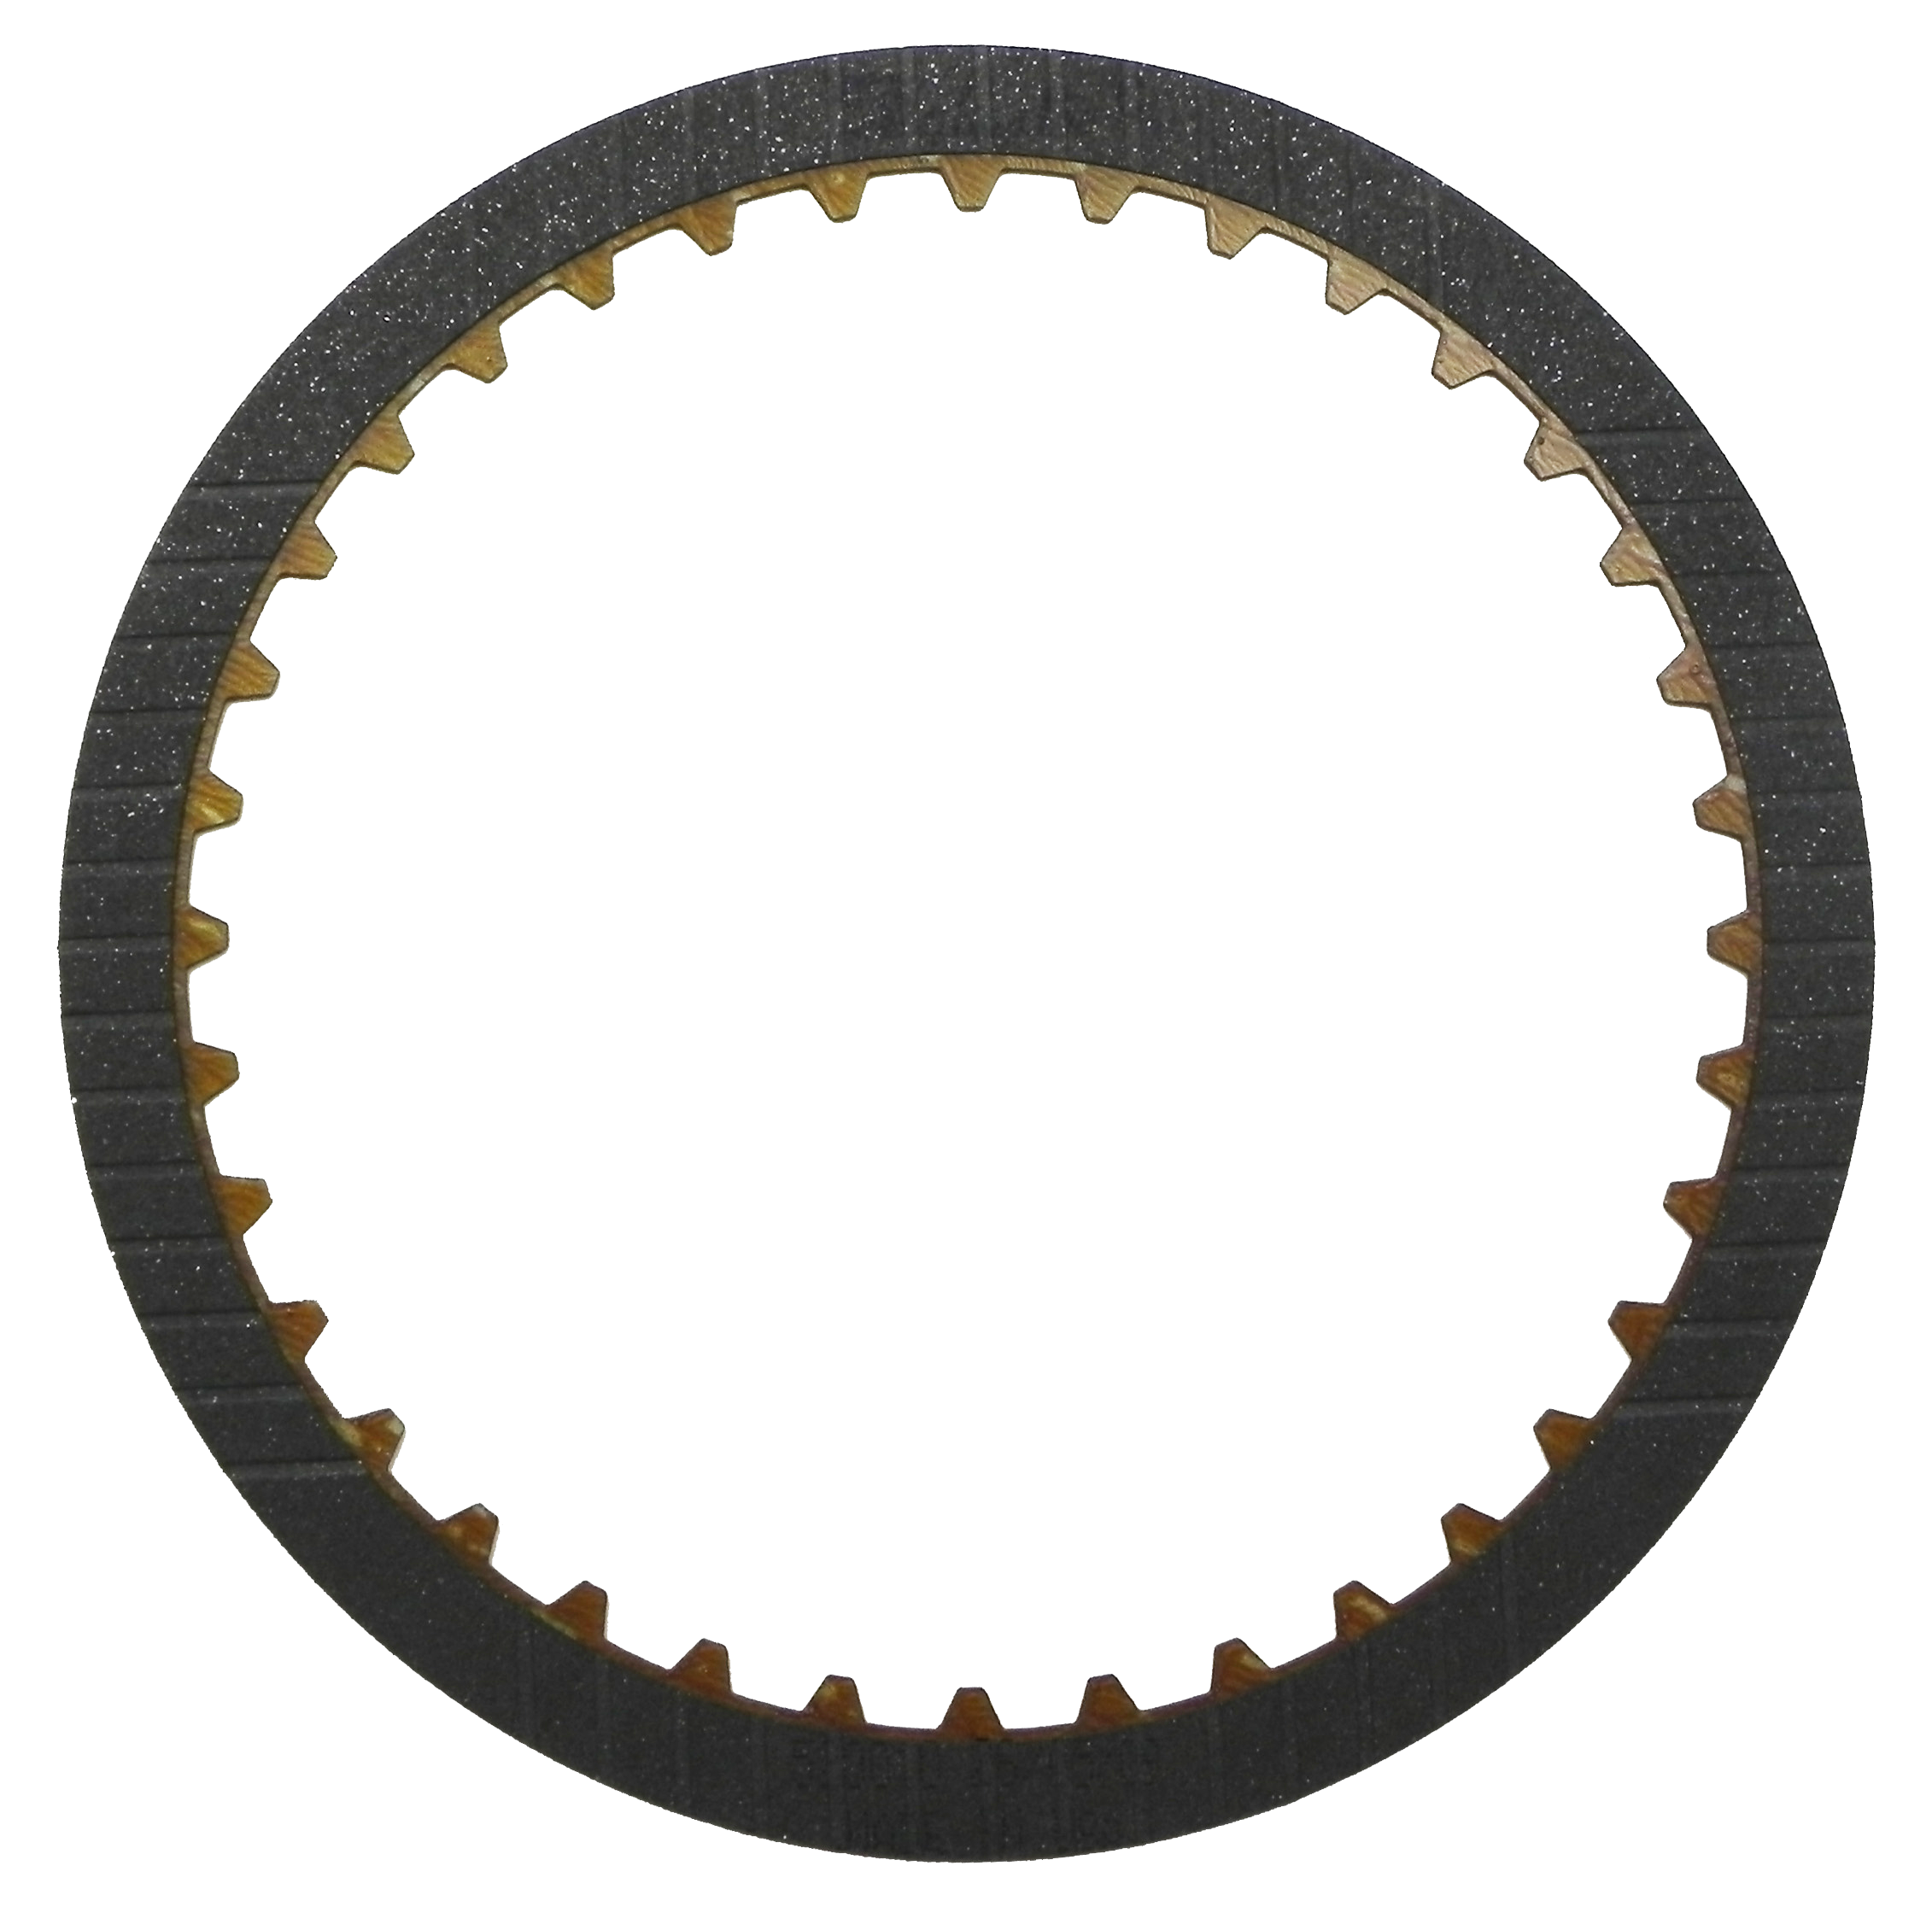 R520010 | 2003-ON Friction Clutch Plate High Energy Forward High Energy